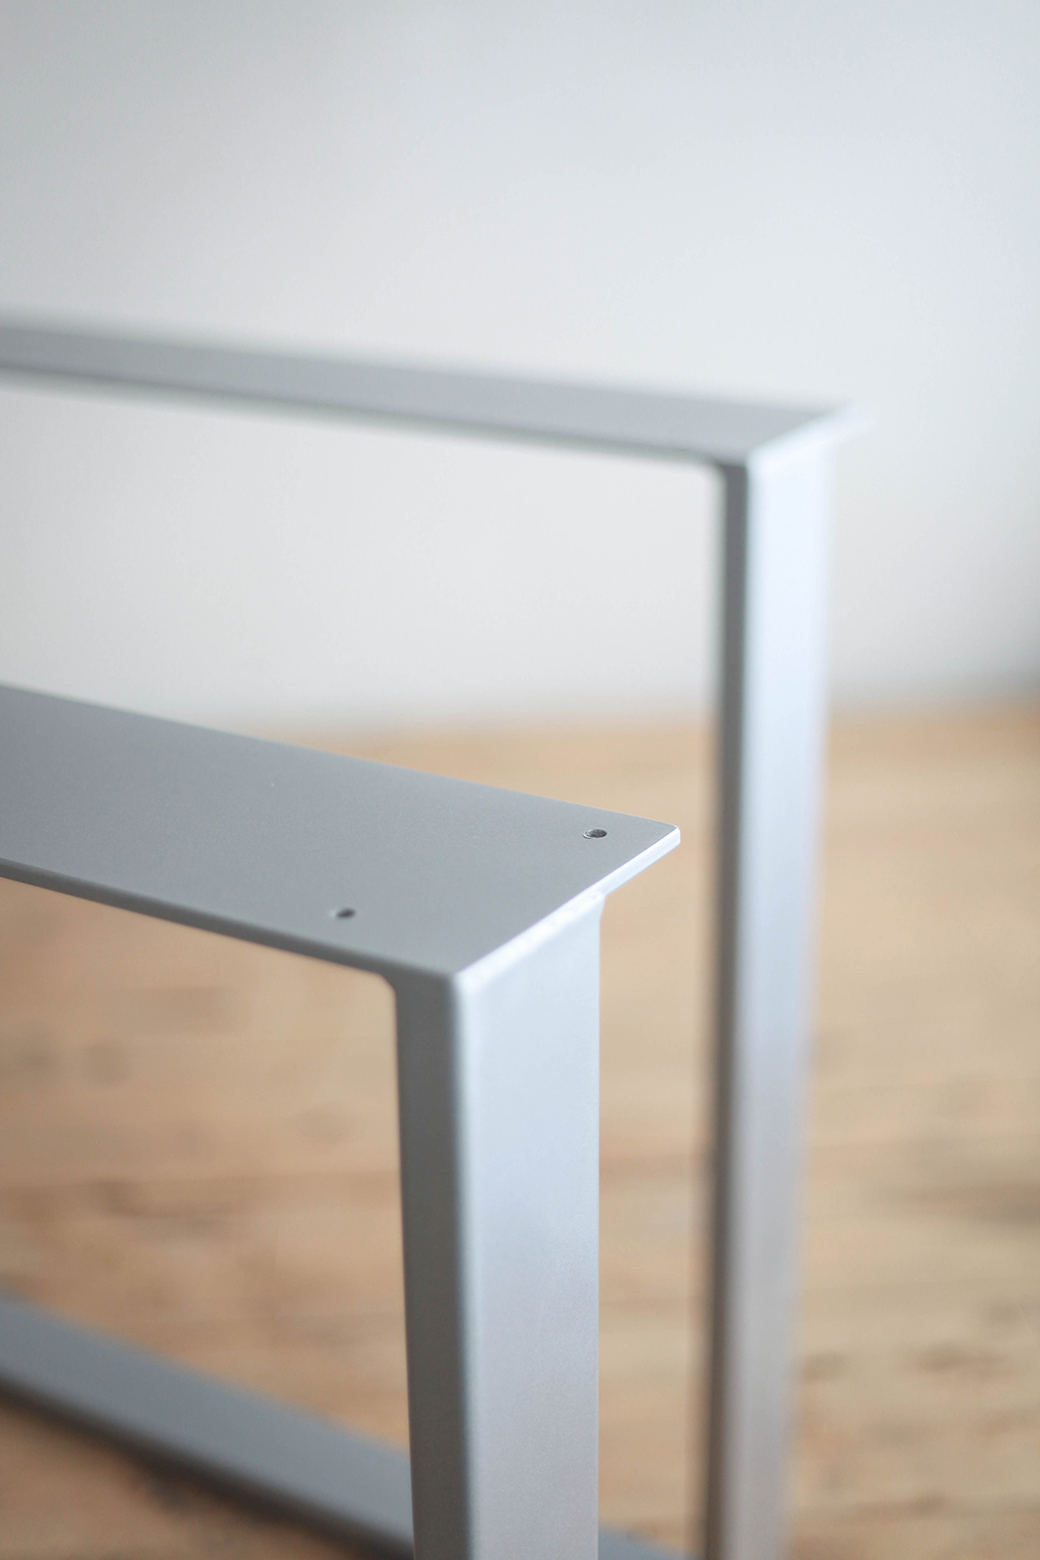 Metal Covered Tables : Powder coated steel u shape table legs factor fabrication